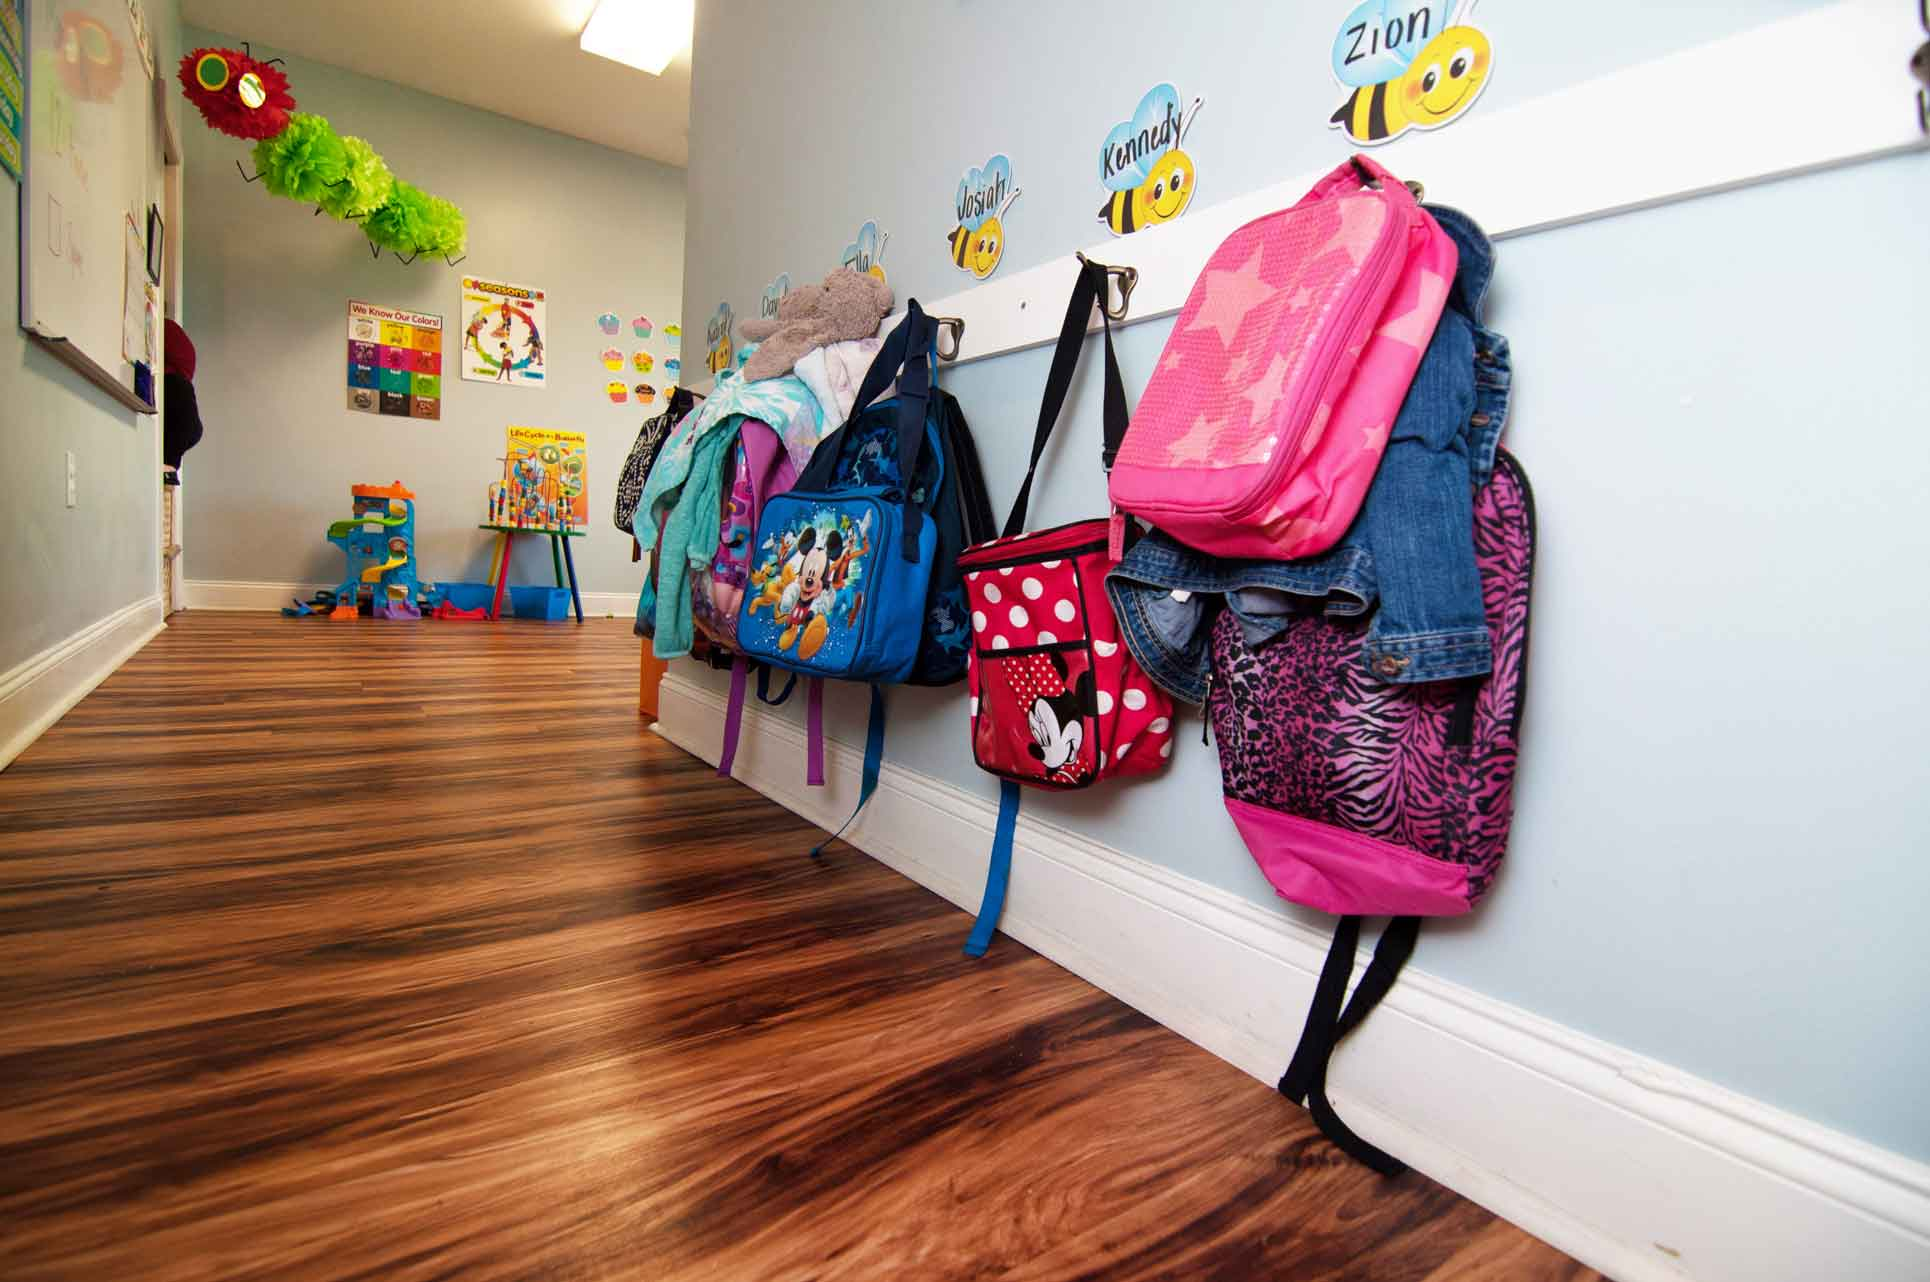 Bookbags-Hanging-on-Wall-at-Faith-Christian-Academy-in-McCleansville-NC